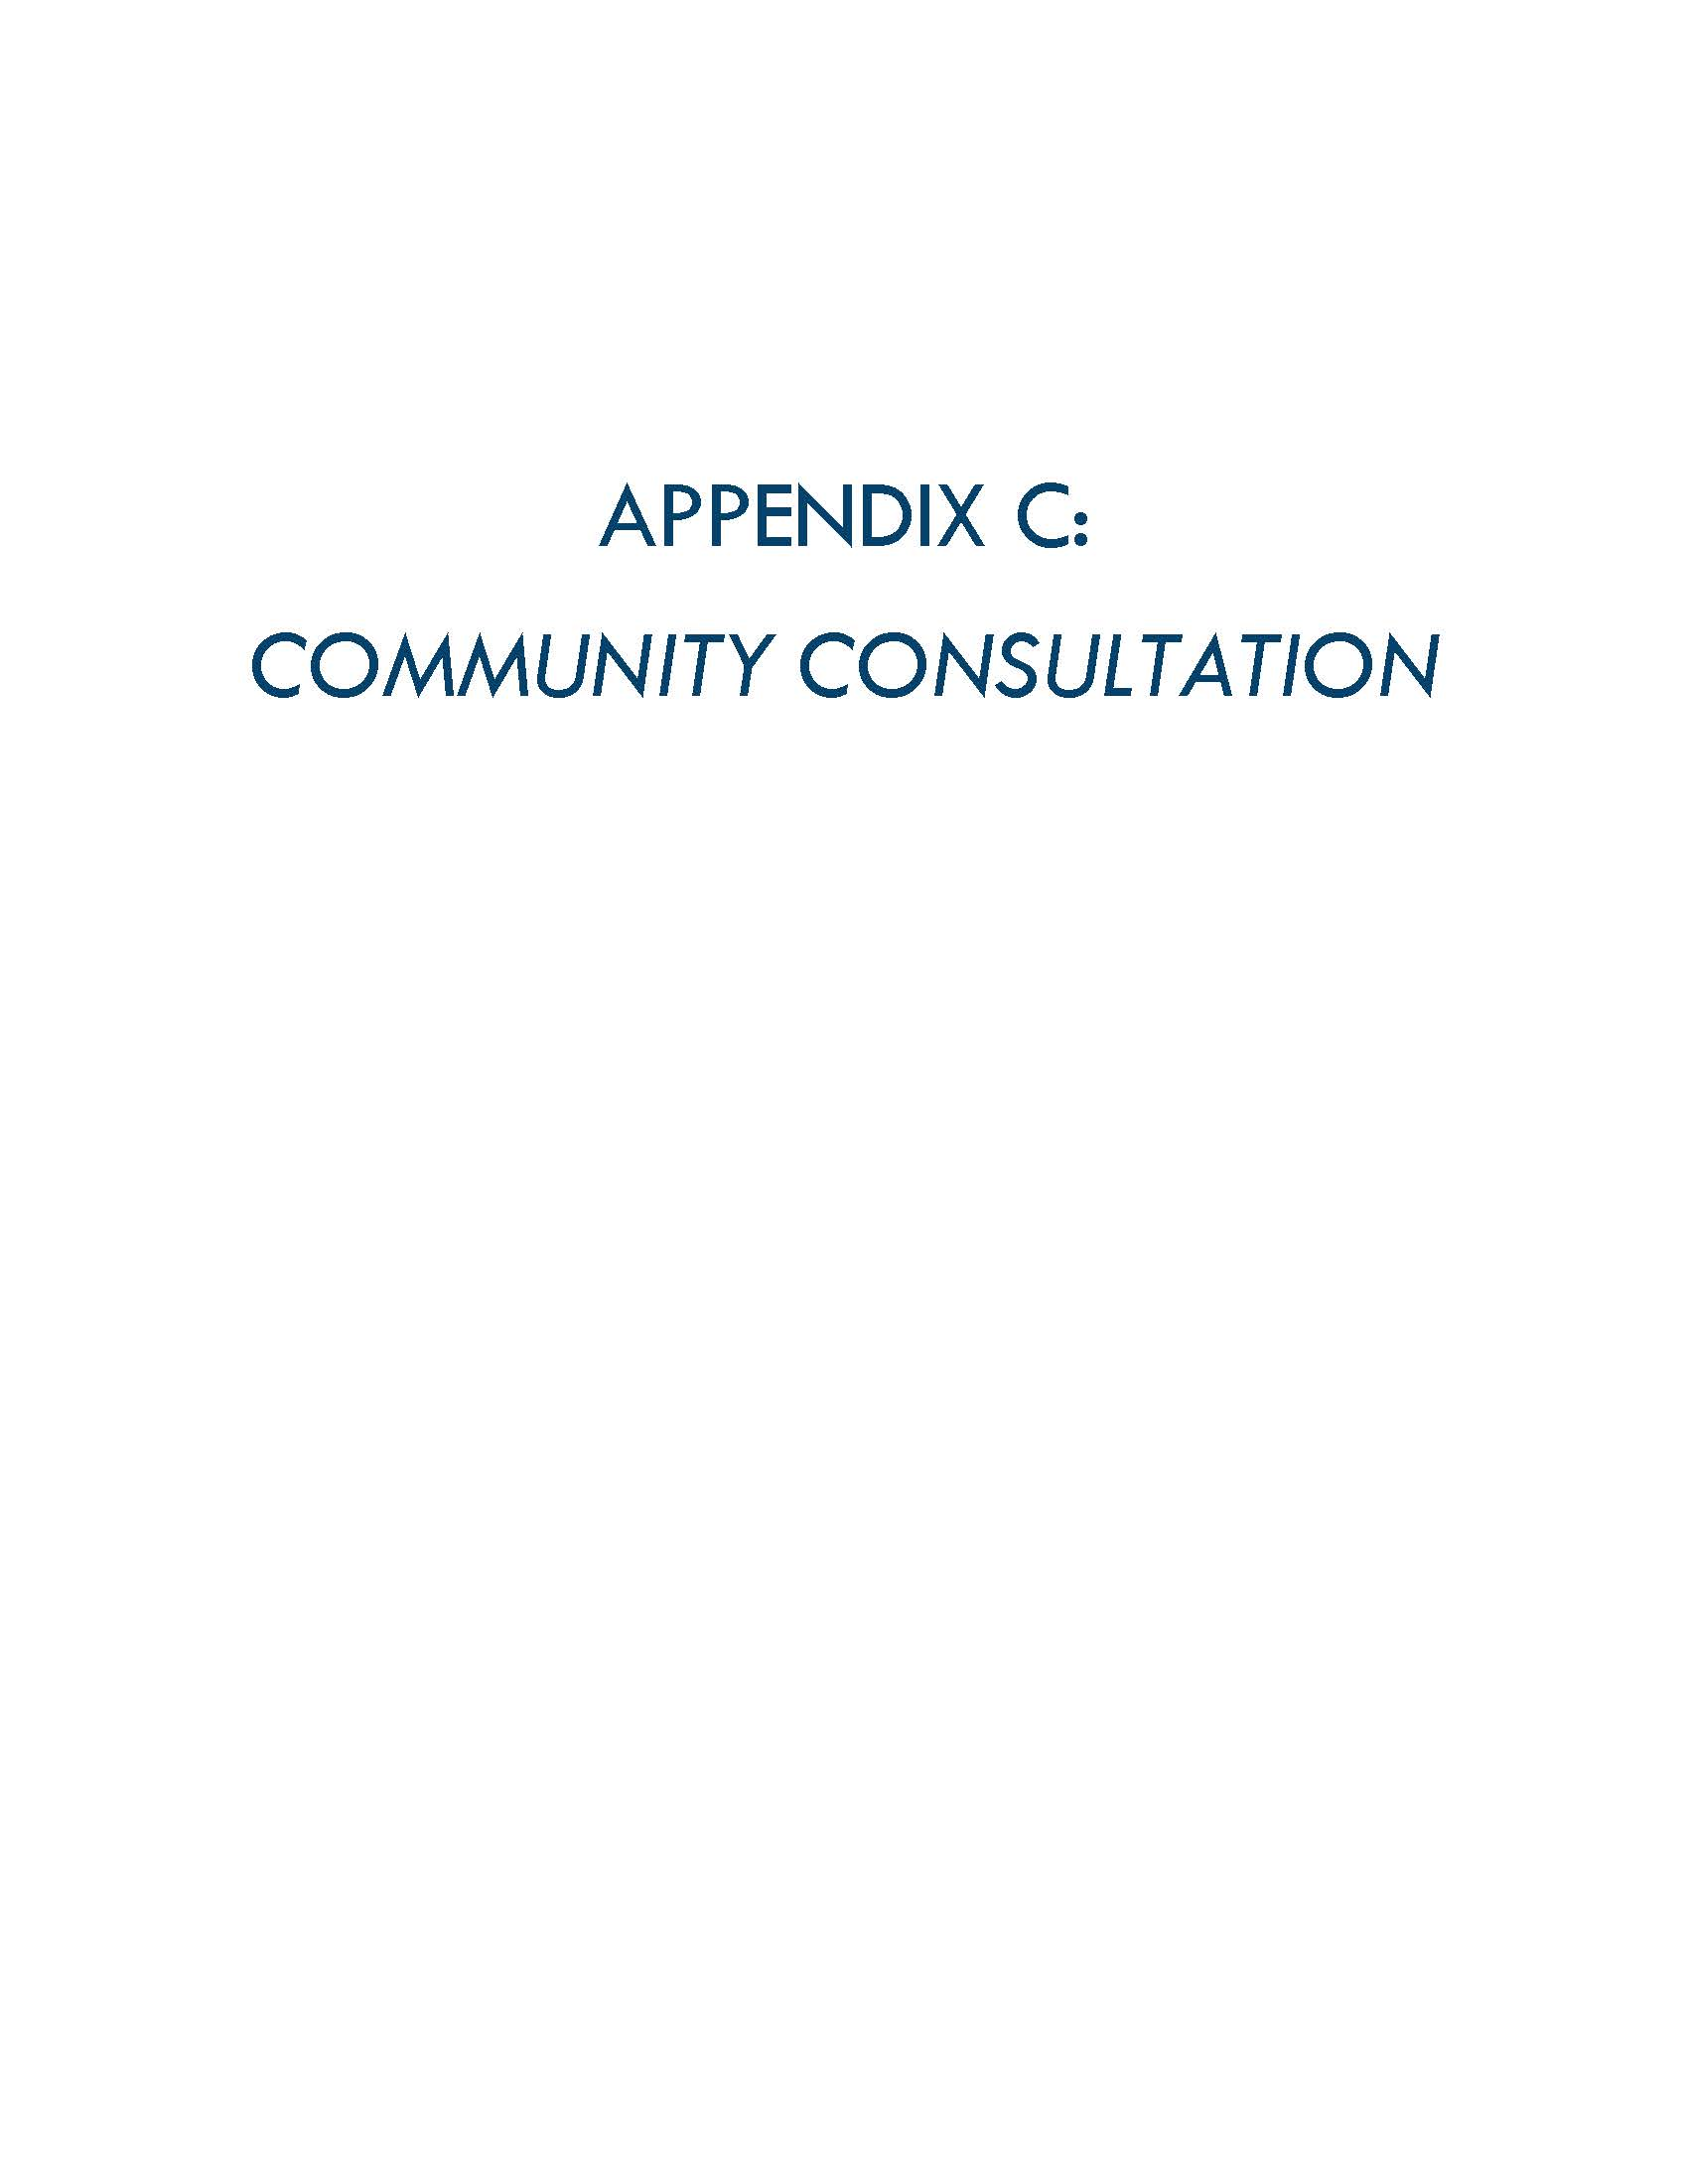 Pages from Appendic C - Community Consultation Final